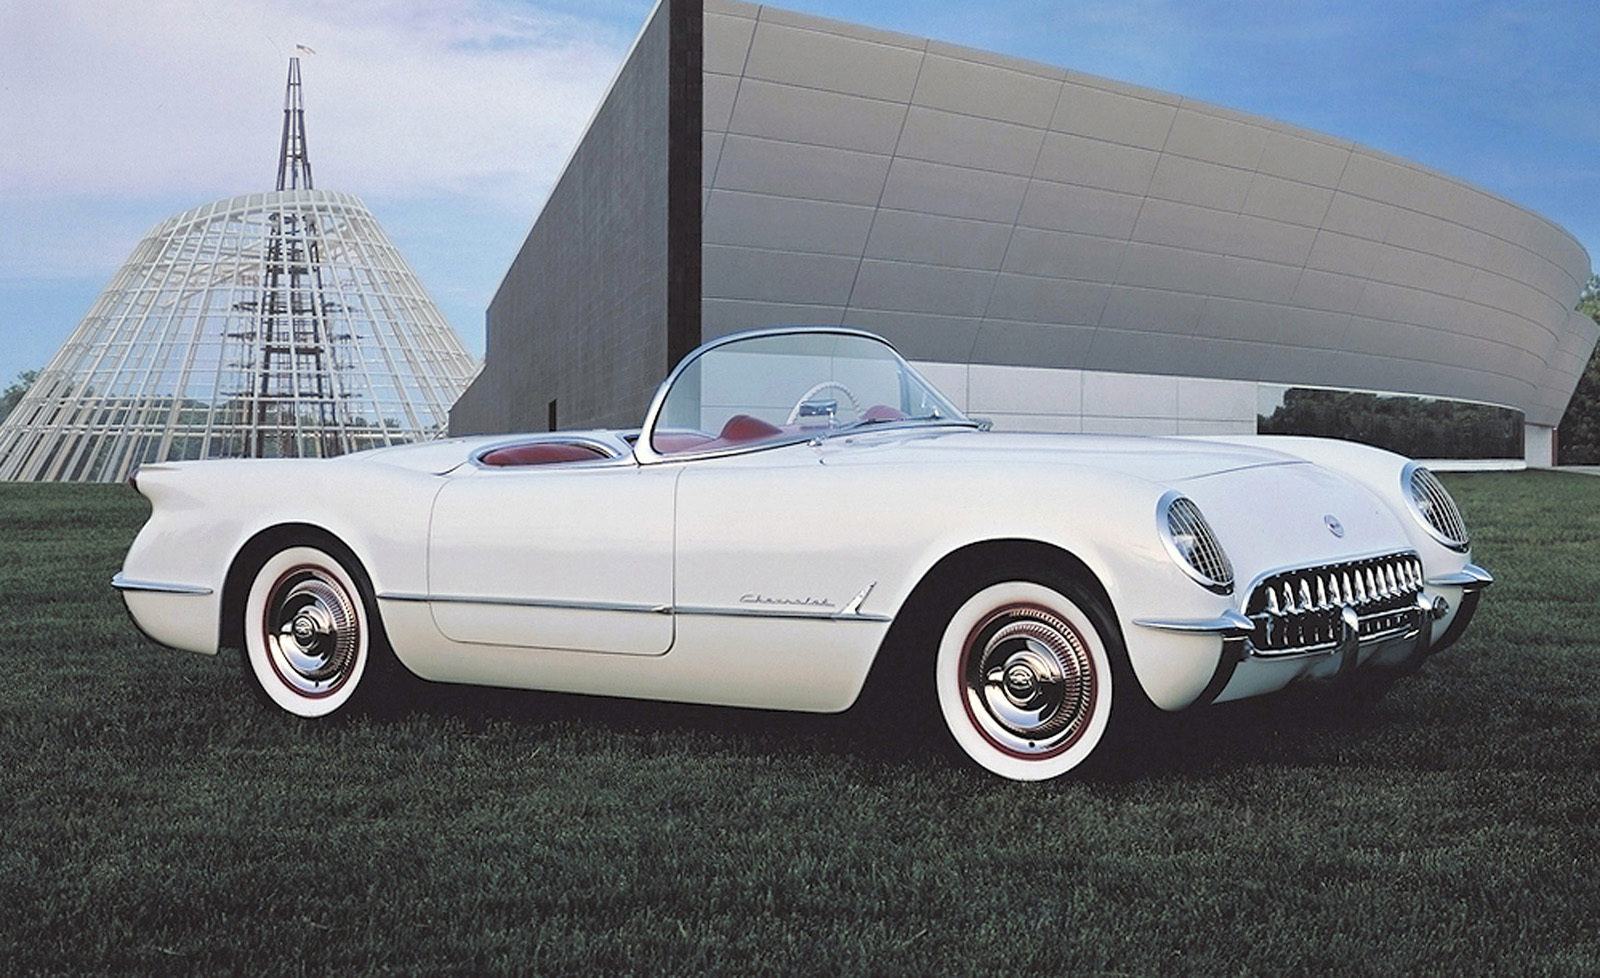 Corvette The Most Legendary Car Made By Chevrolet And An American